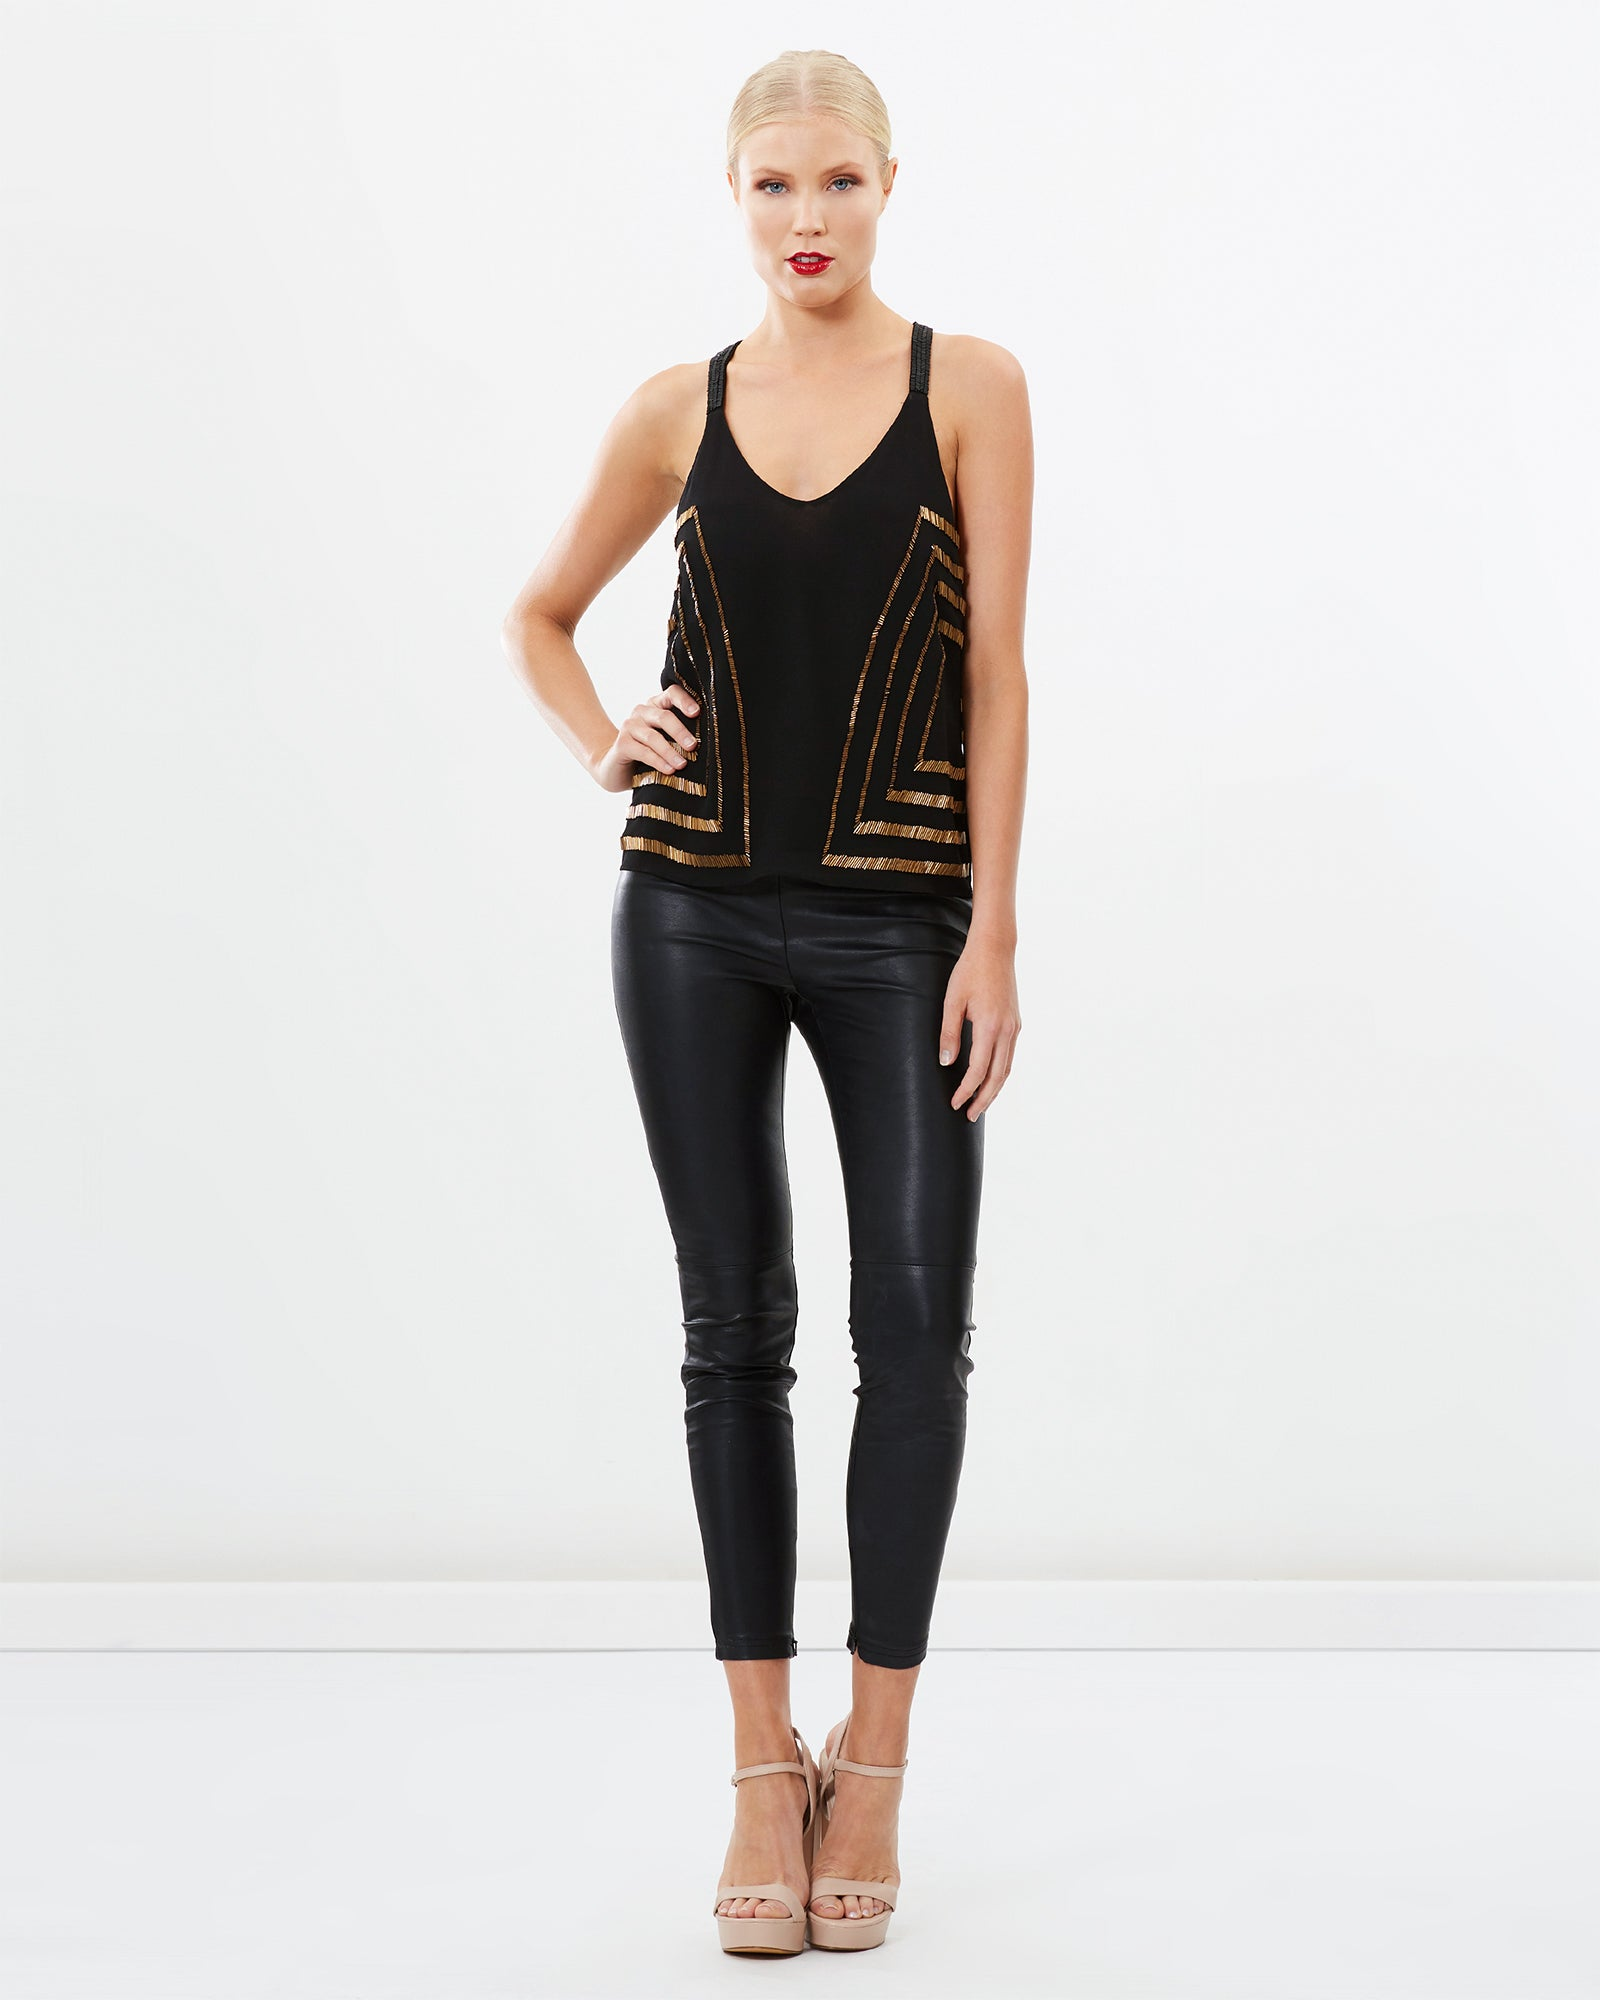 V-NECK BEADED TOP